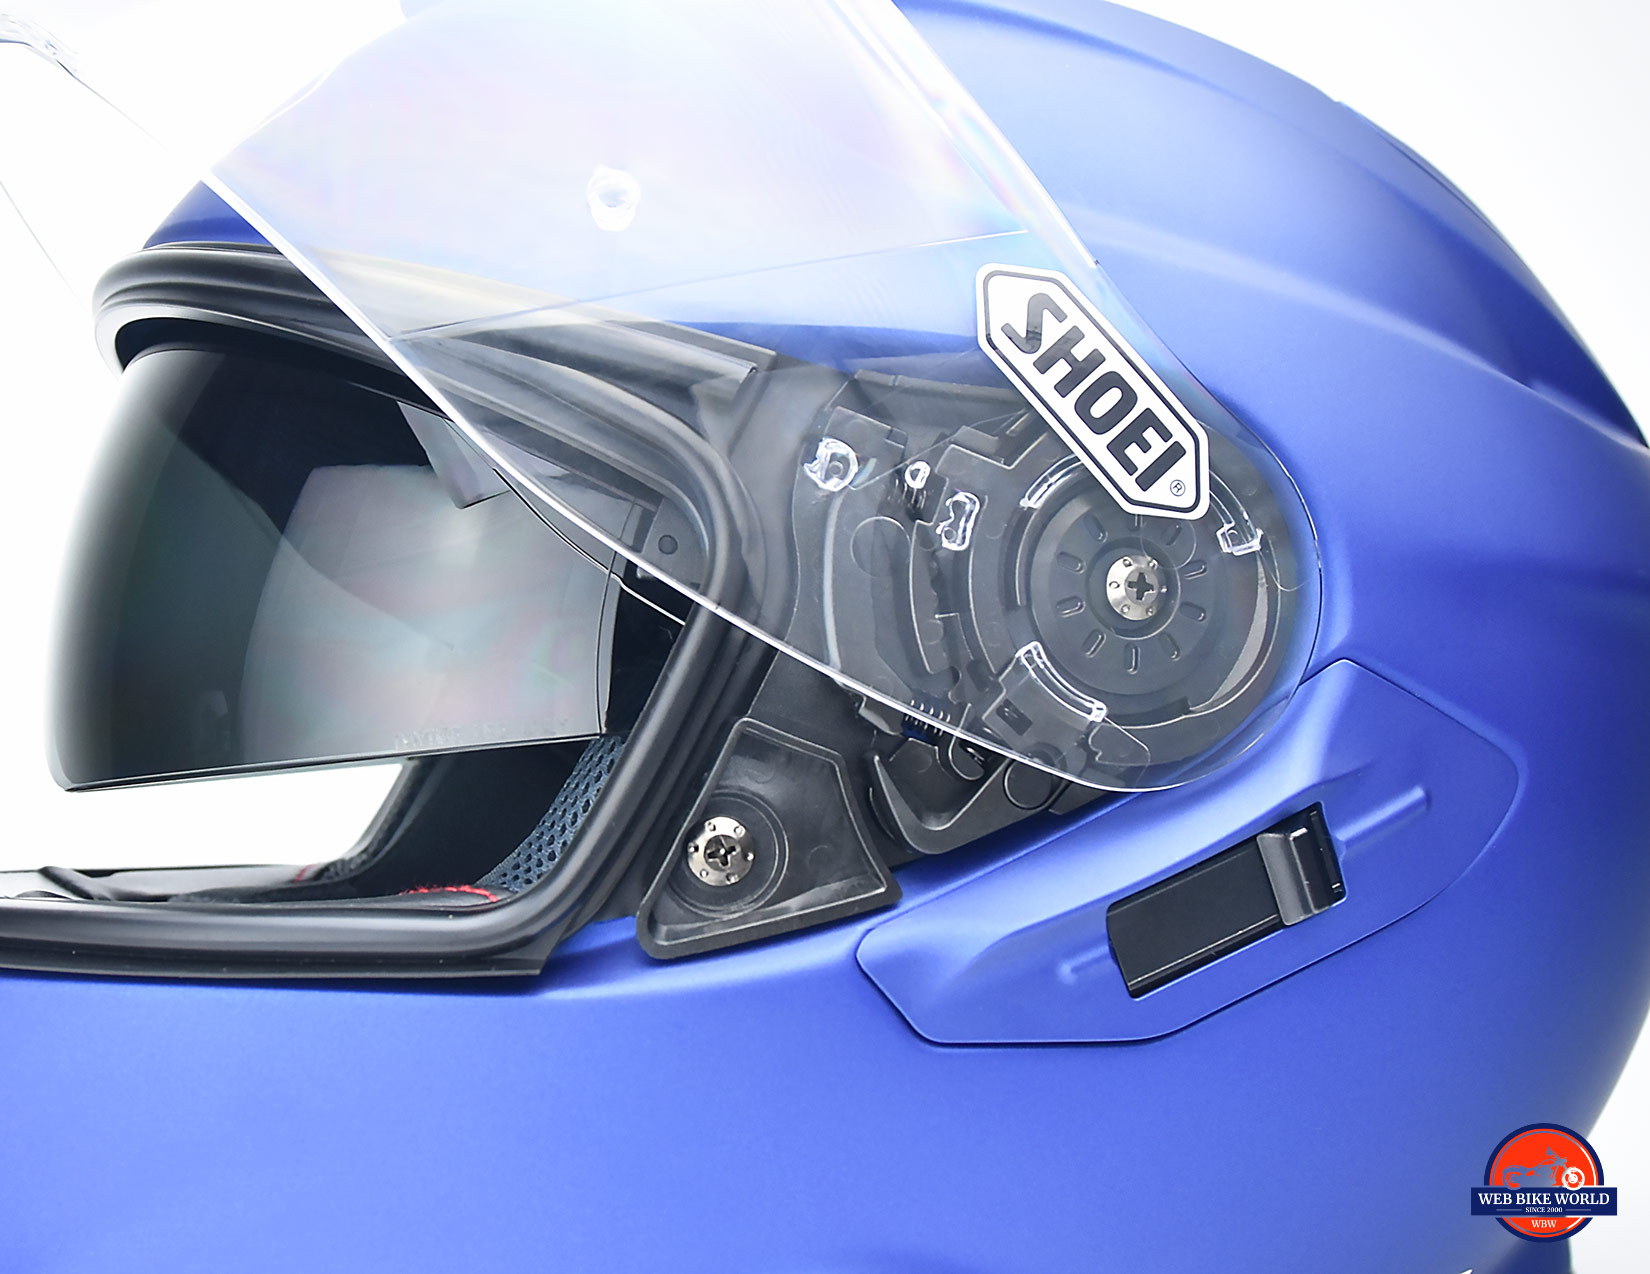 Hinge and internal sun lens on the Shoei GT Air II